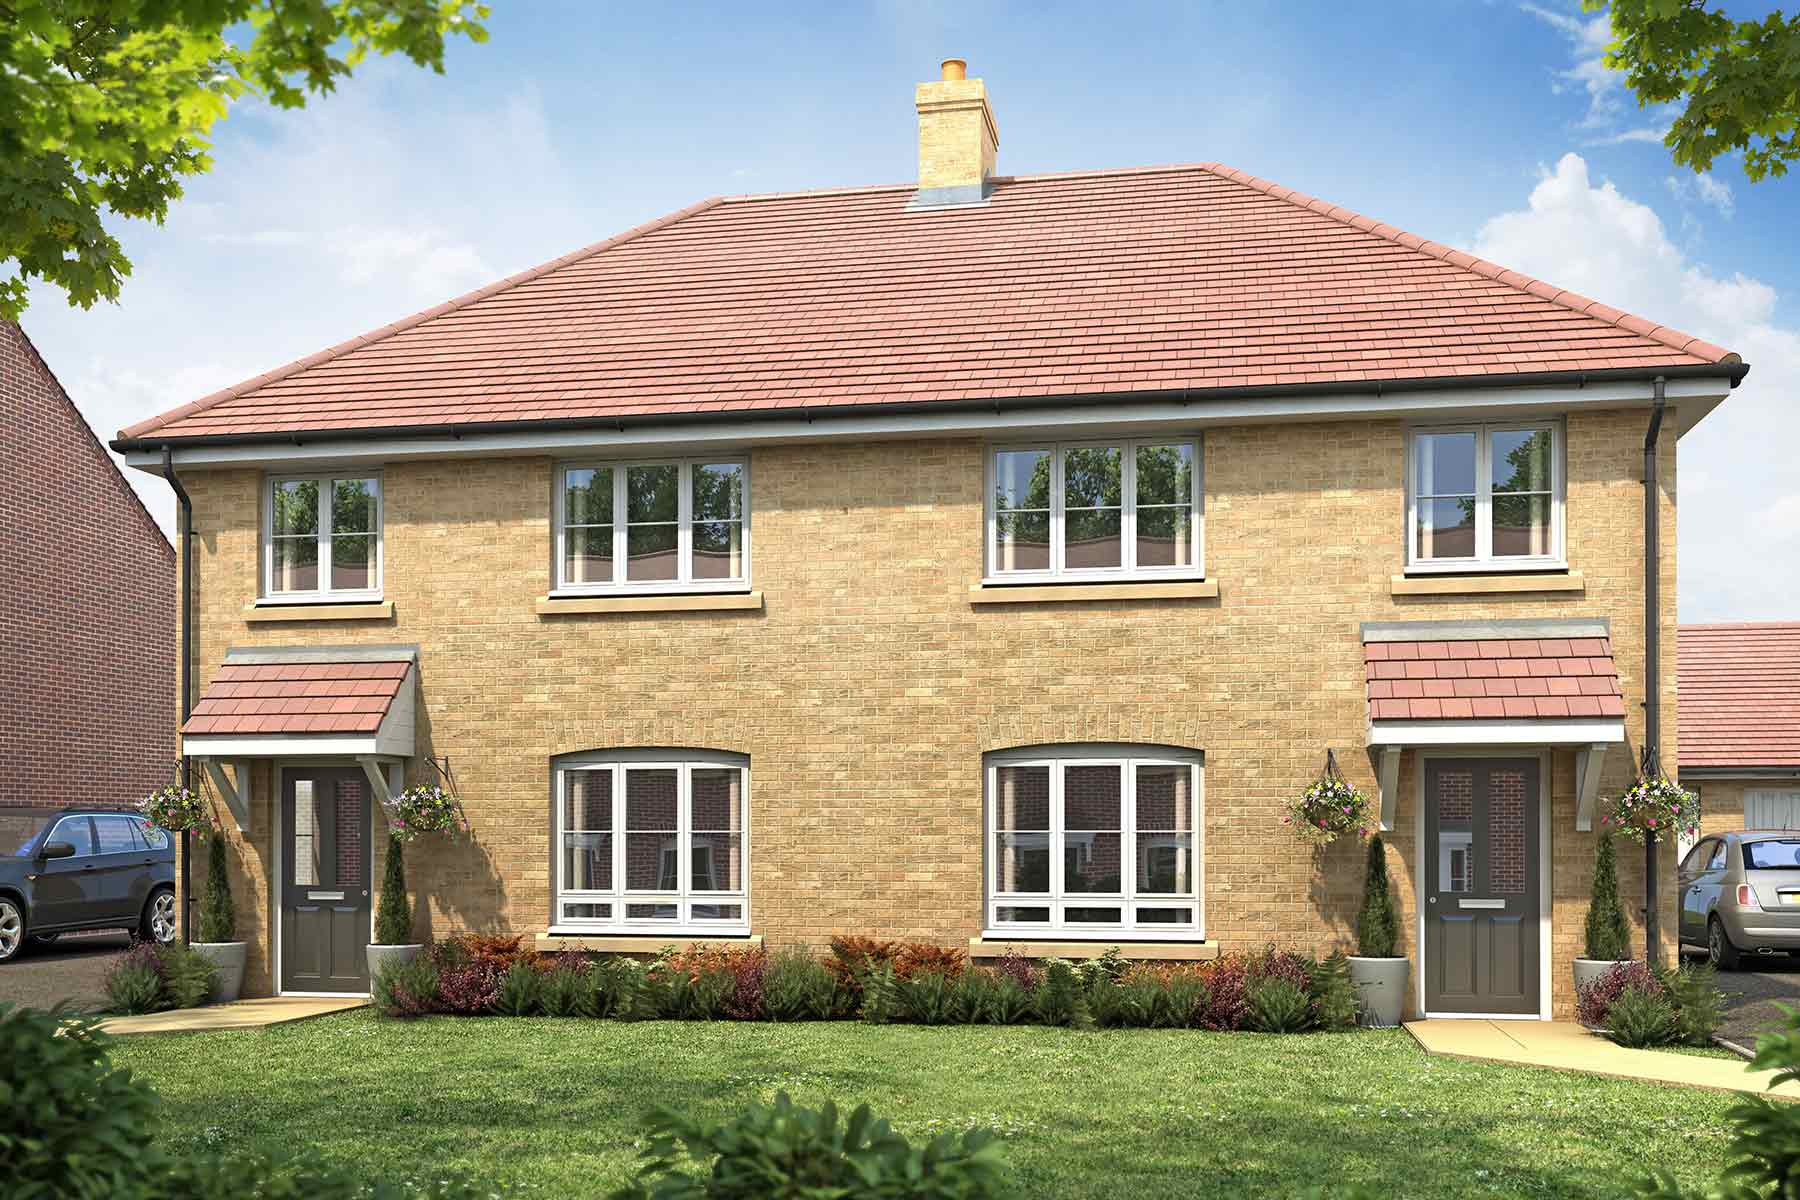 CGI-PA44-Midford-Plots-16-17-Woodford-Meadow